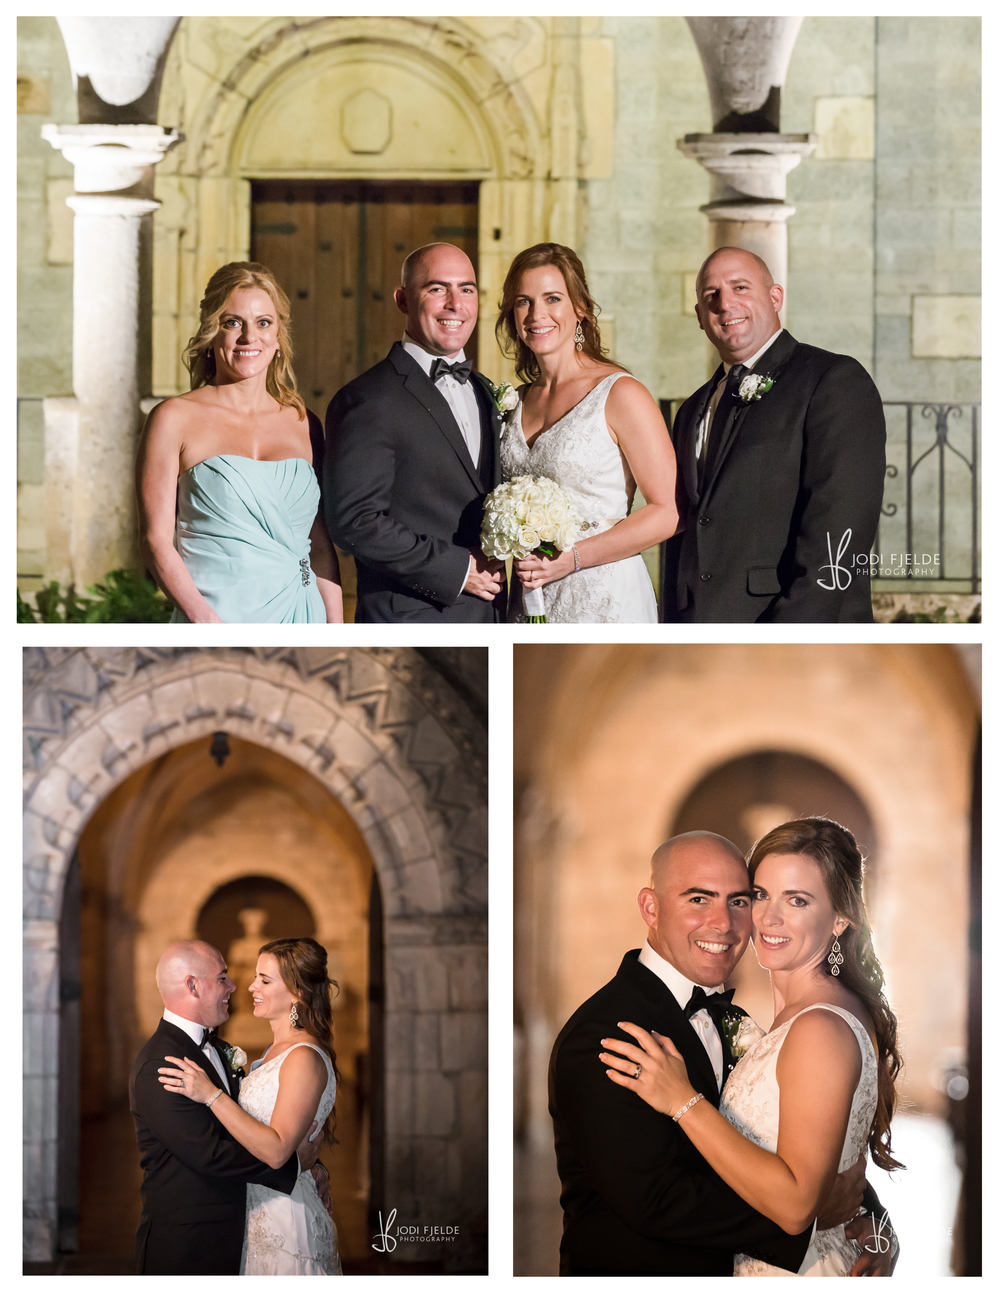 Ancient_Spanish_Monastery_Miami_Florida_wedding_Gio_Iggy_Jodi_Fjelde_Photography_12.jpg